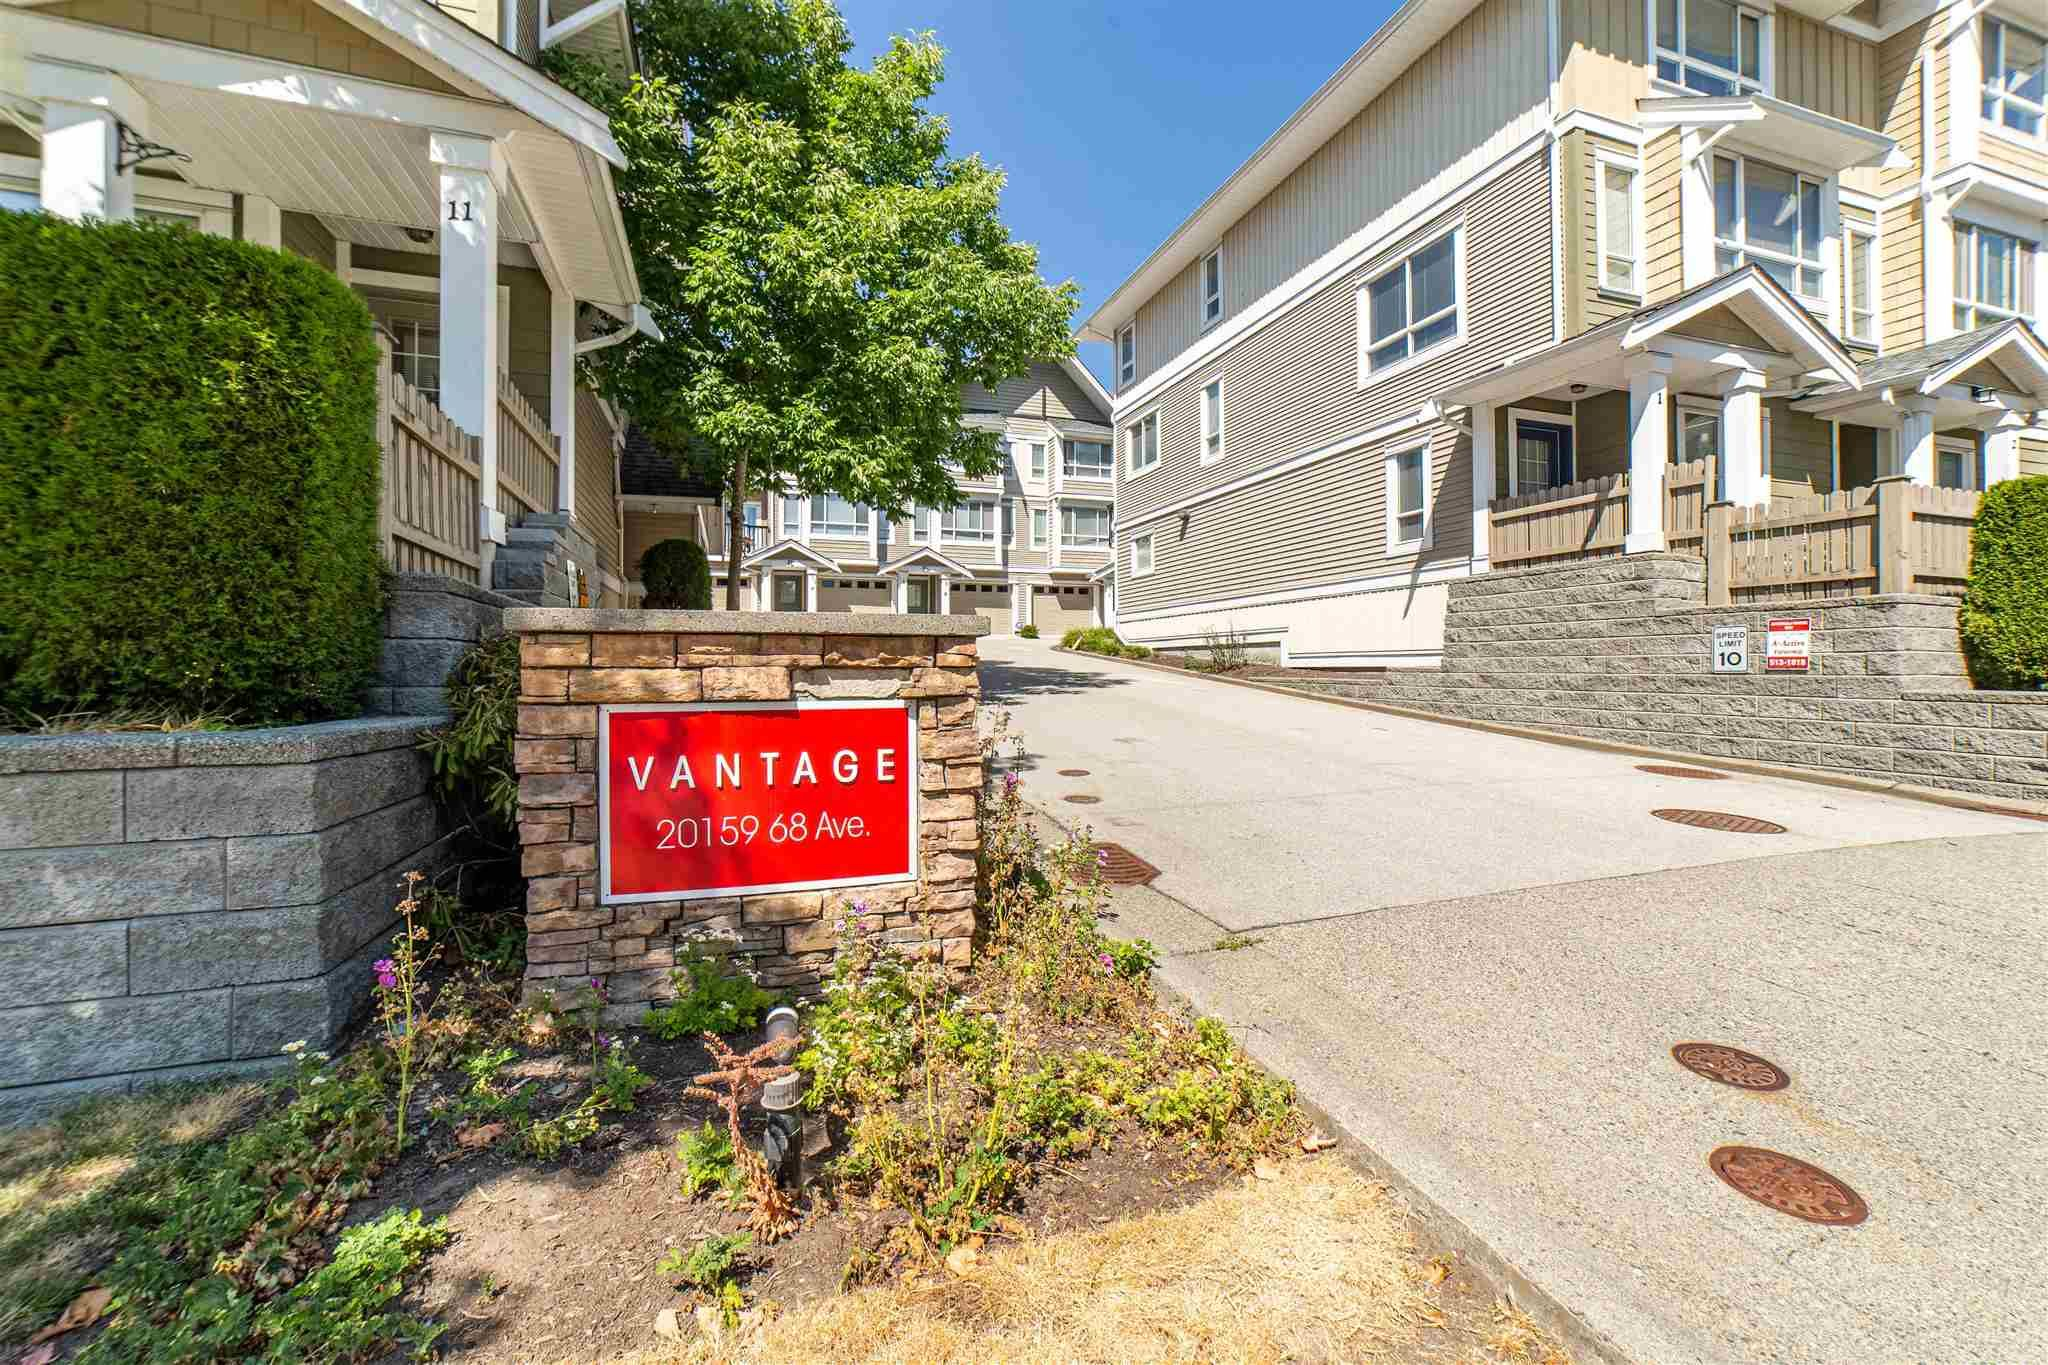 Main Photo: 2 20159 68 Avenue in Langley: Willoughby Heights Townhouse for sale : MLS®# R2605698